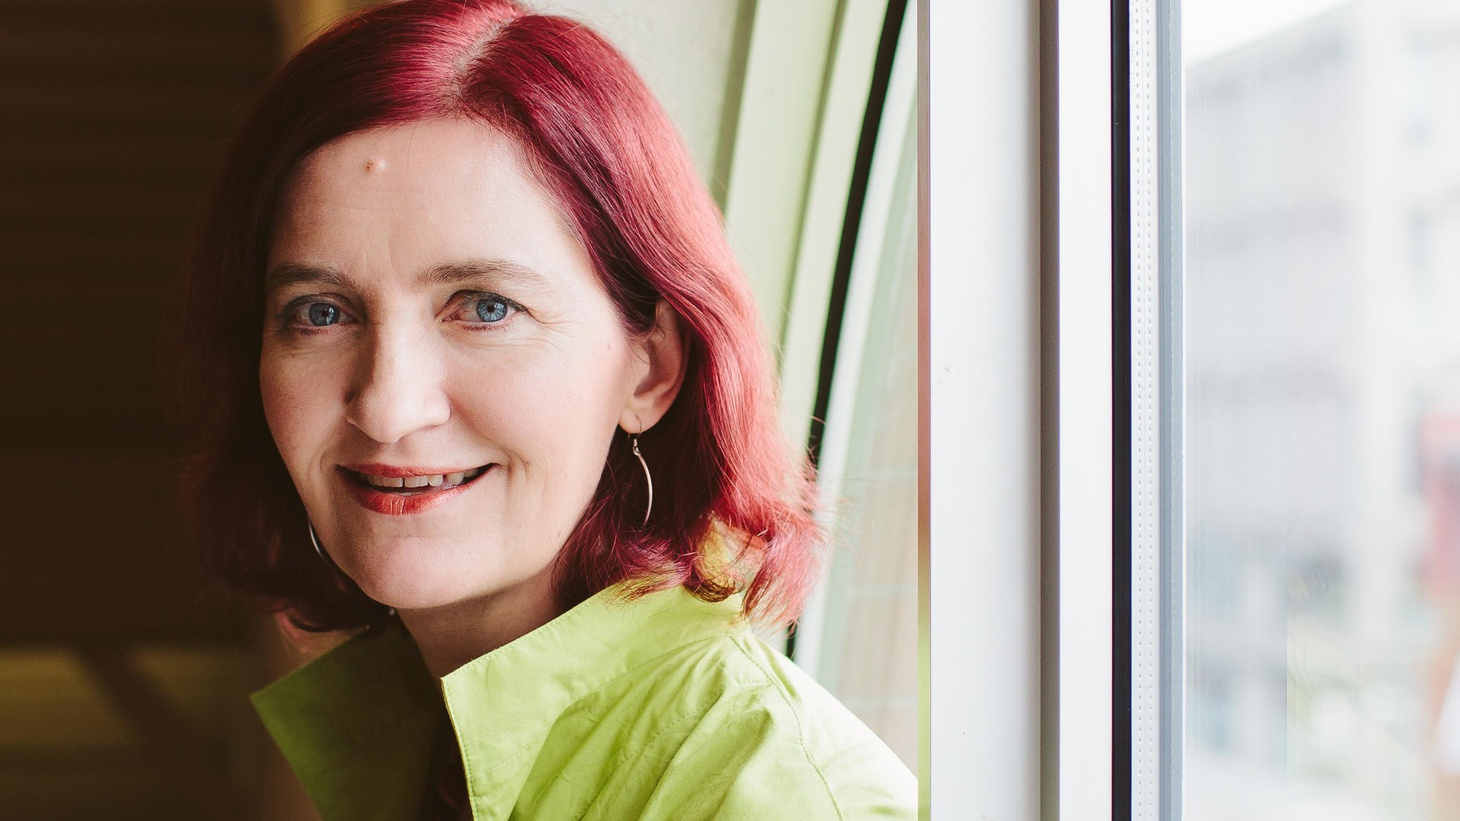 Emma Donoghue found the San Francisco she uncovered while researching for her novel far more modern than the Dublin she grew up in a century later.